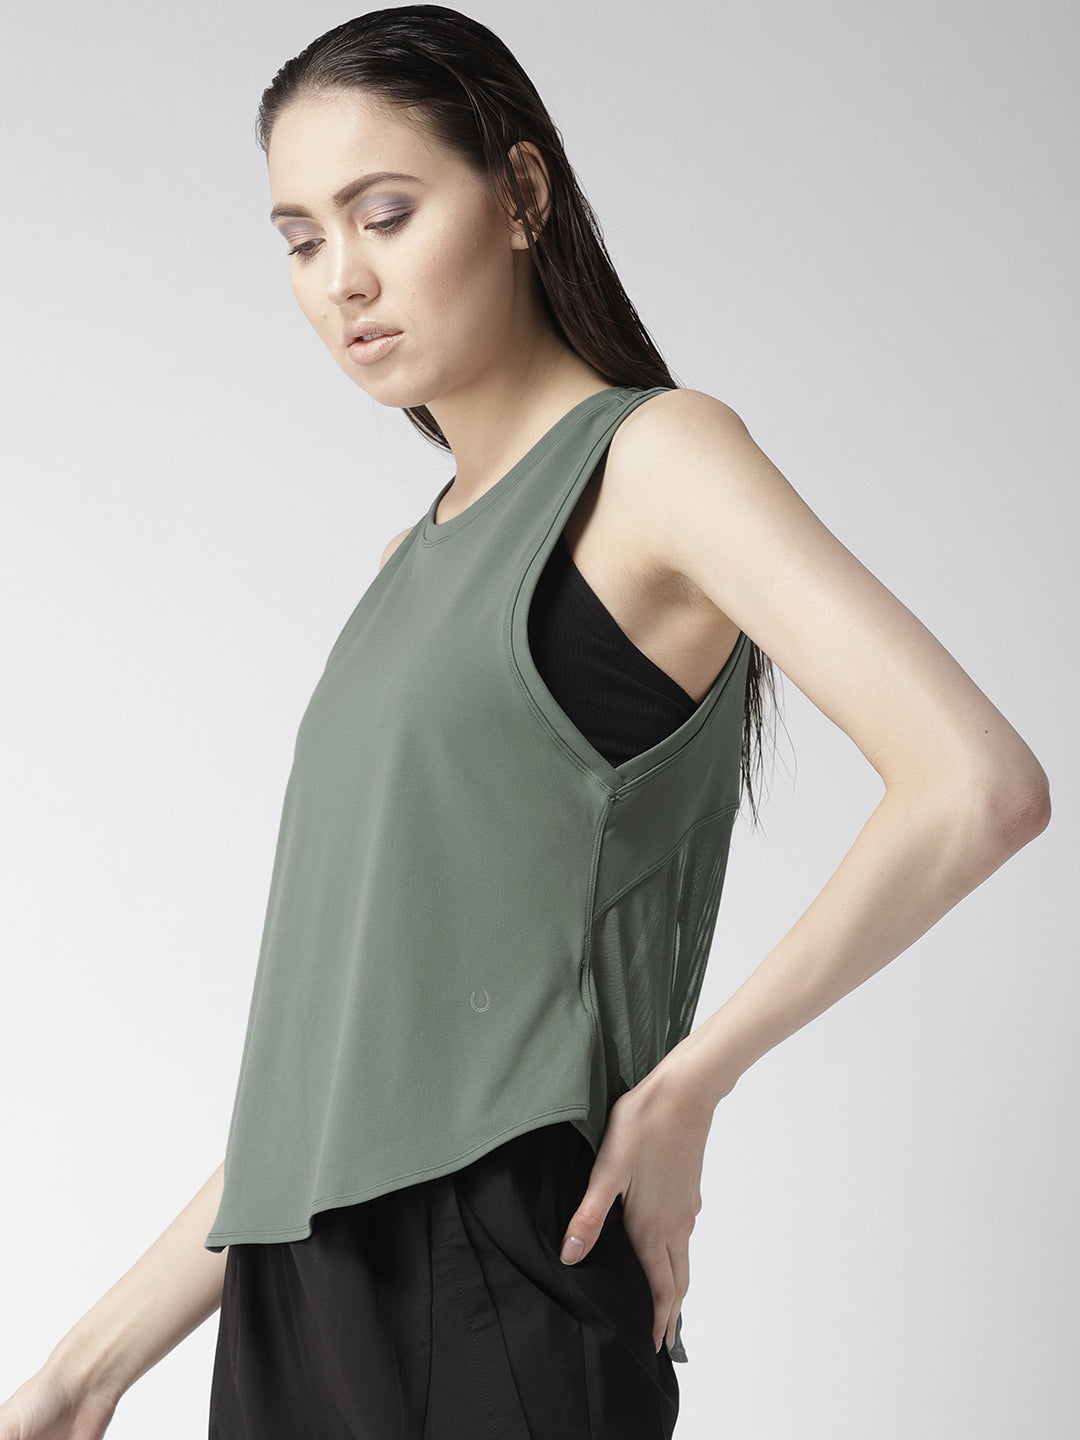 Fitkin Green Relaxed Fit Yoga Back Tie Tank Top